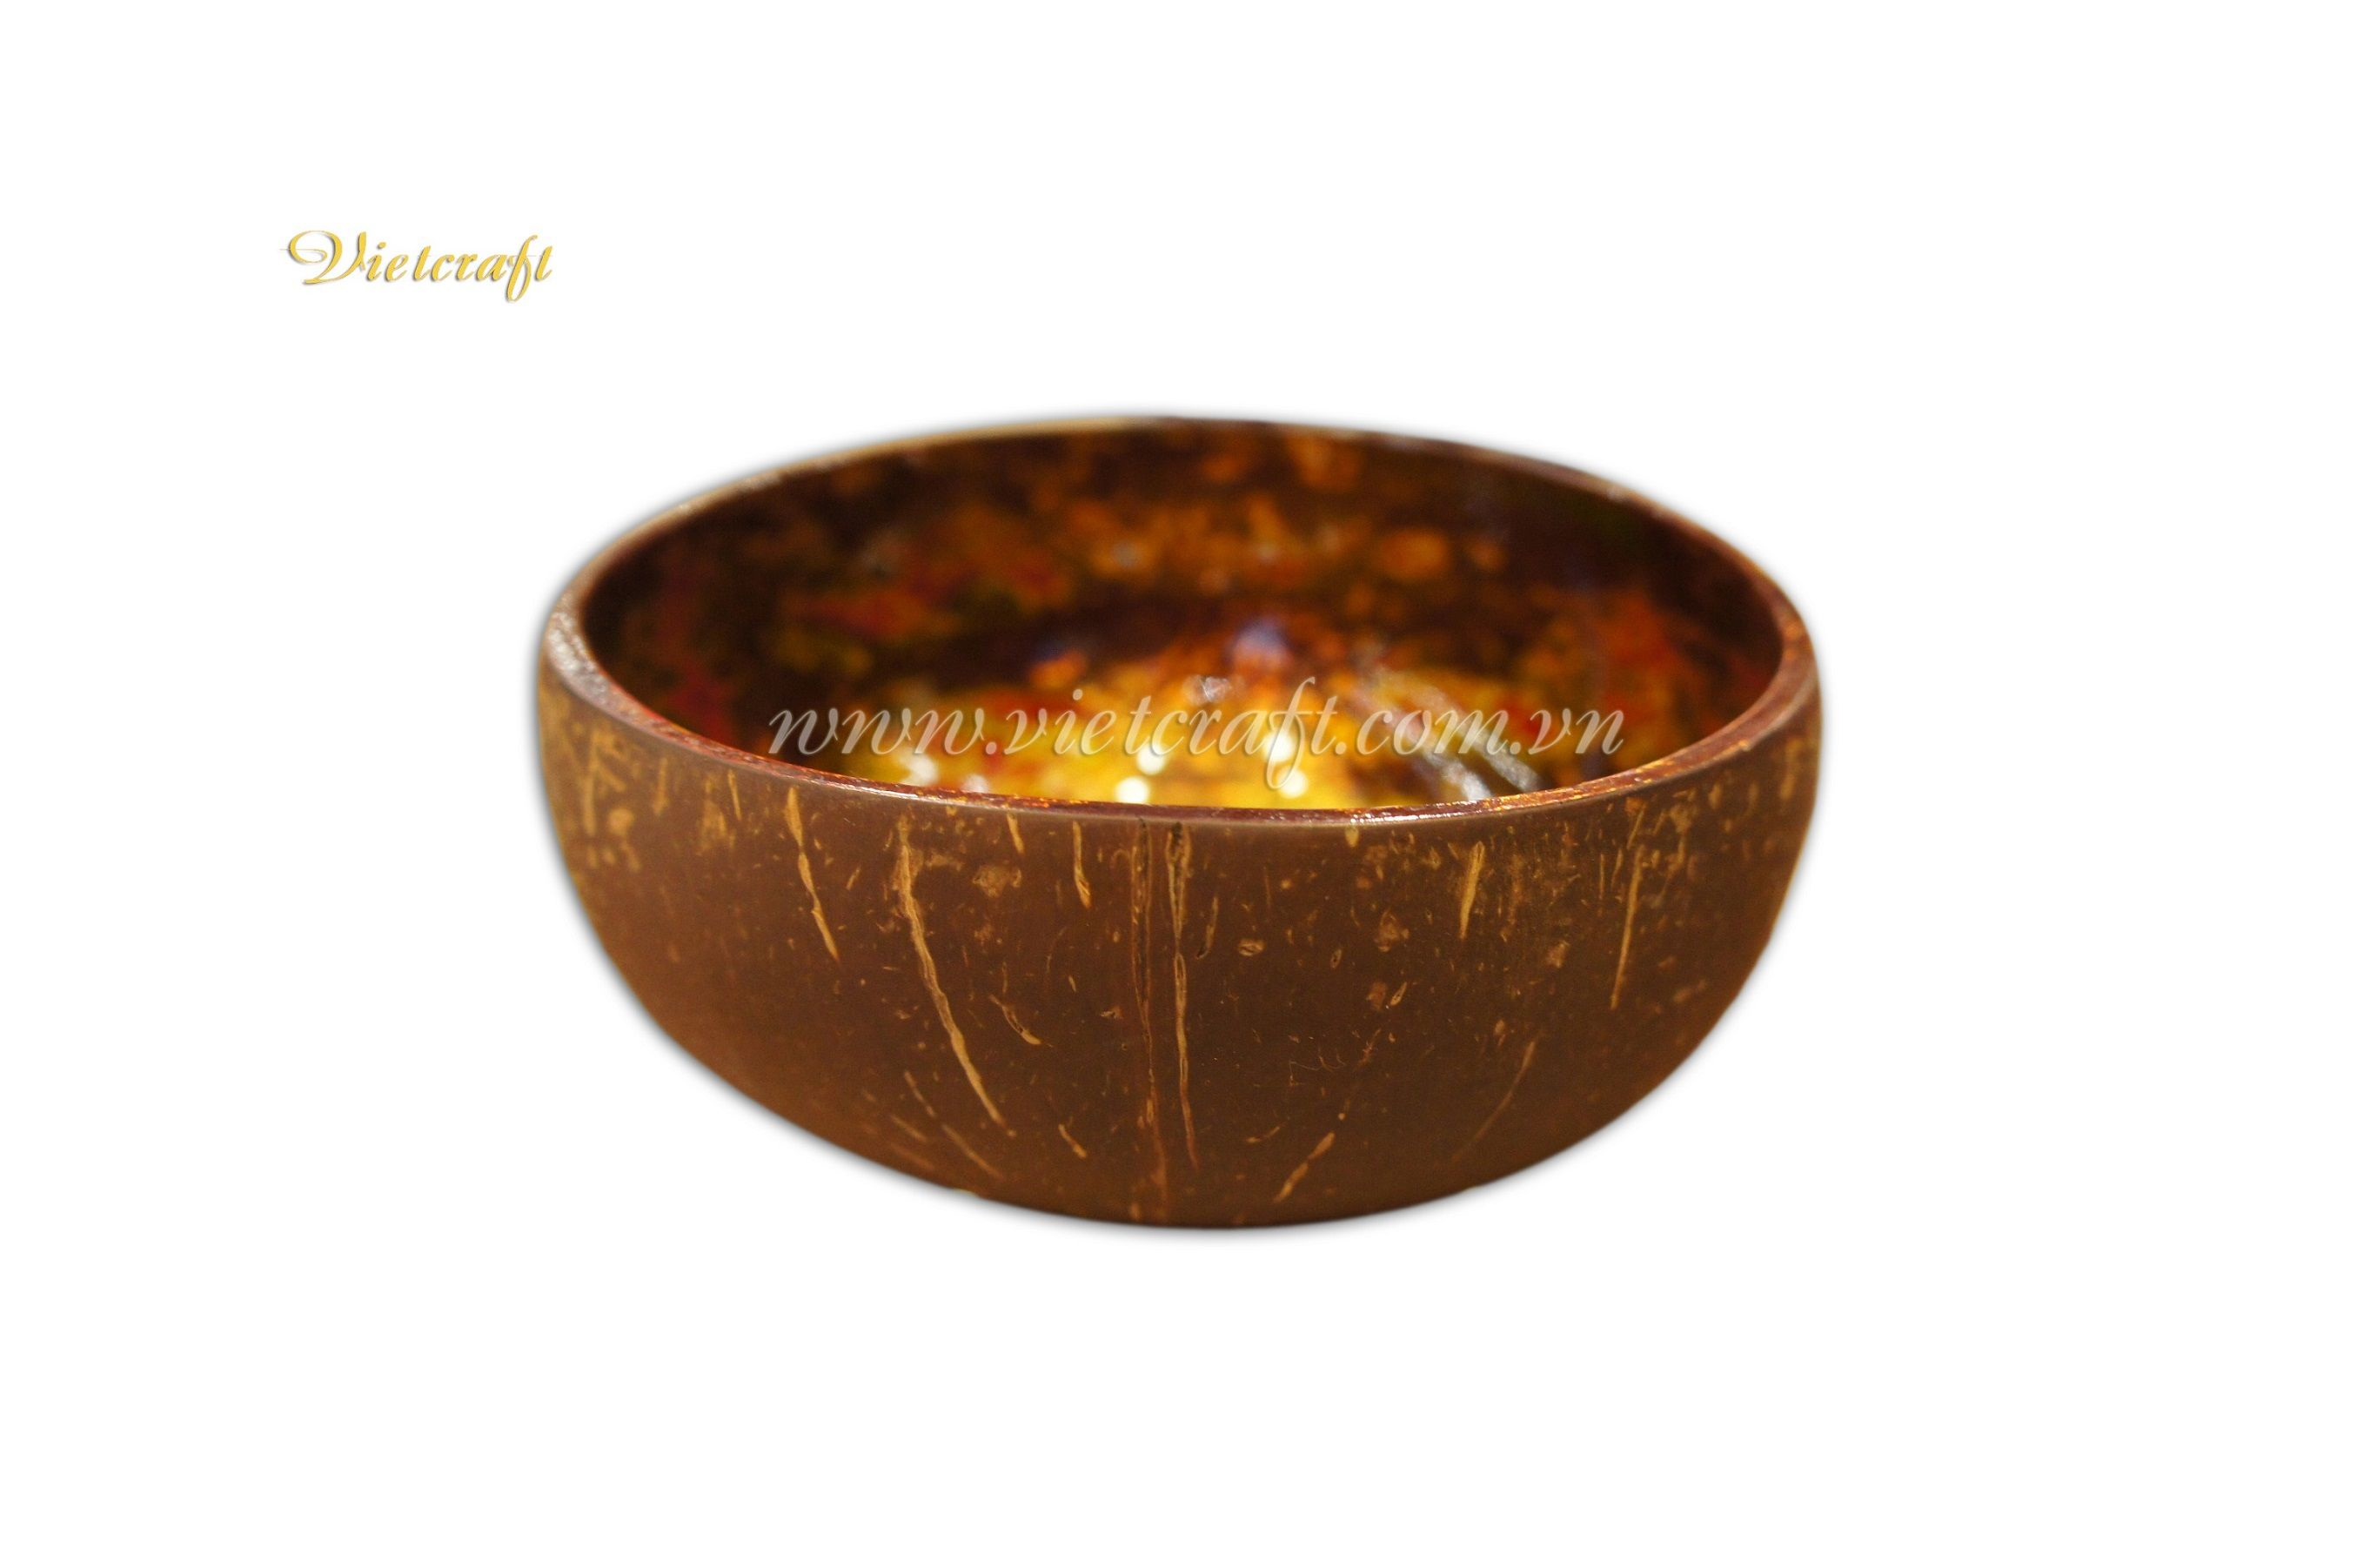 Handcrafted from Vietnam. Stunning wood and eggshell cuff bangles